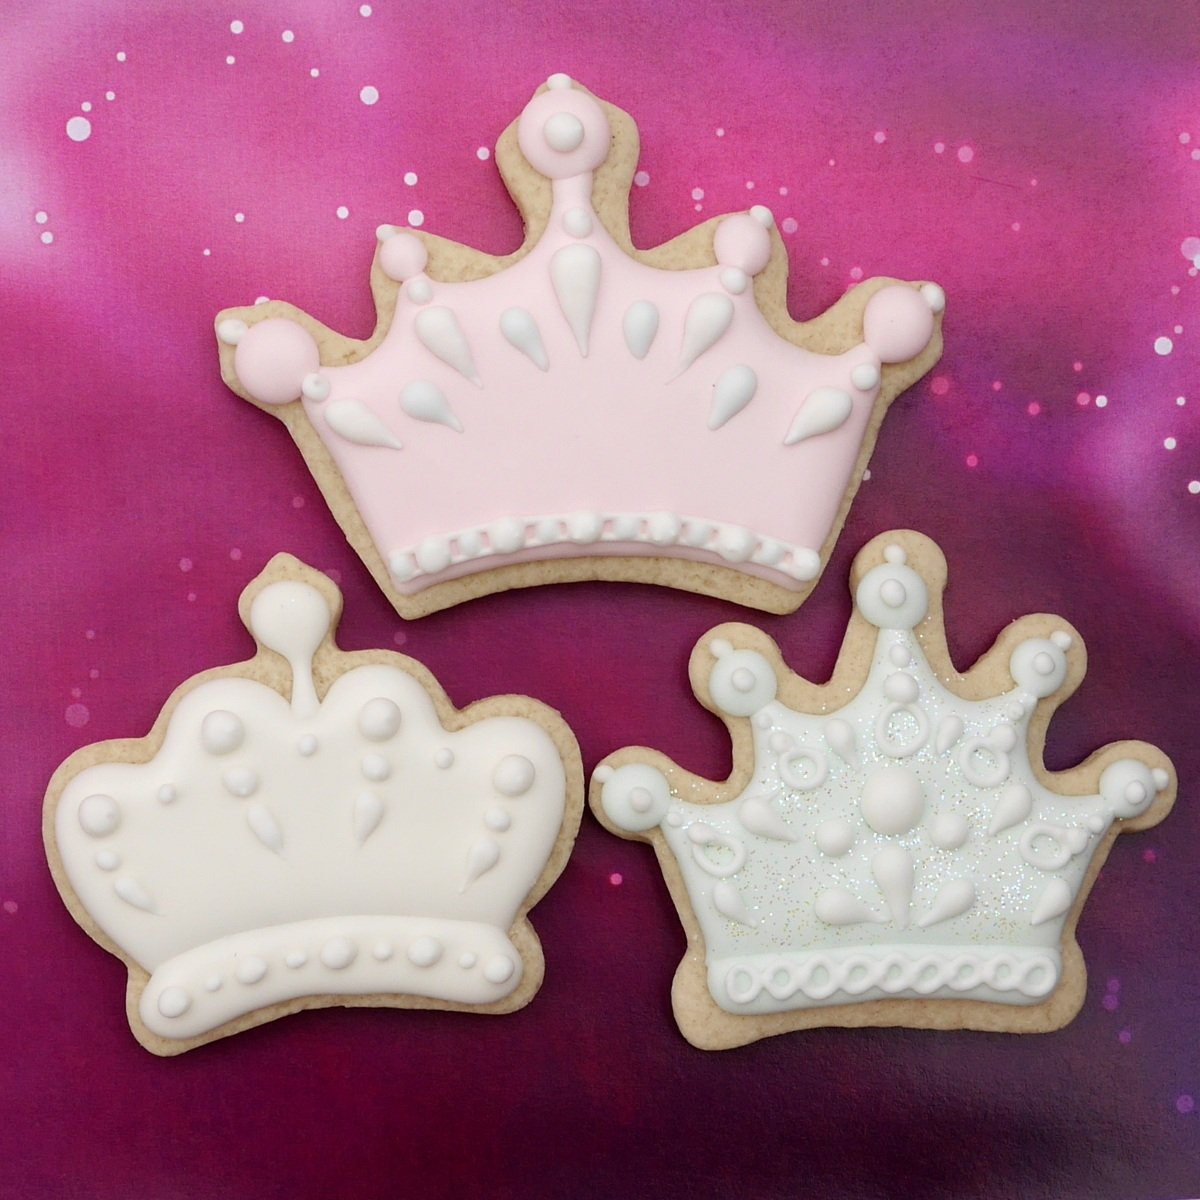 Princess Kingdom Cookie Cutter Set - 10 Piece Stainless Steel by Sweet Cookie Crumbs (Image #3)